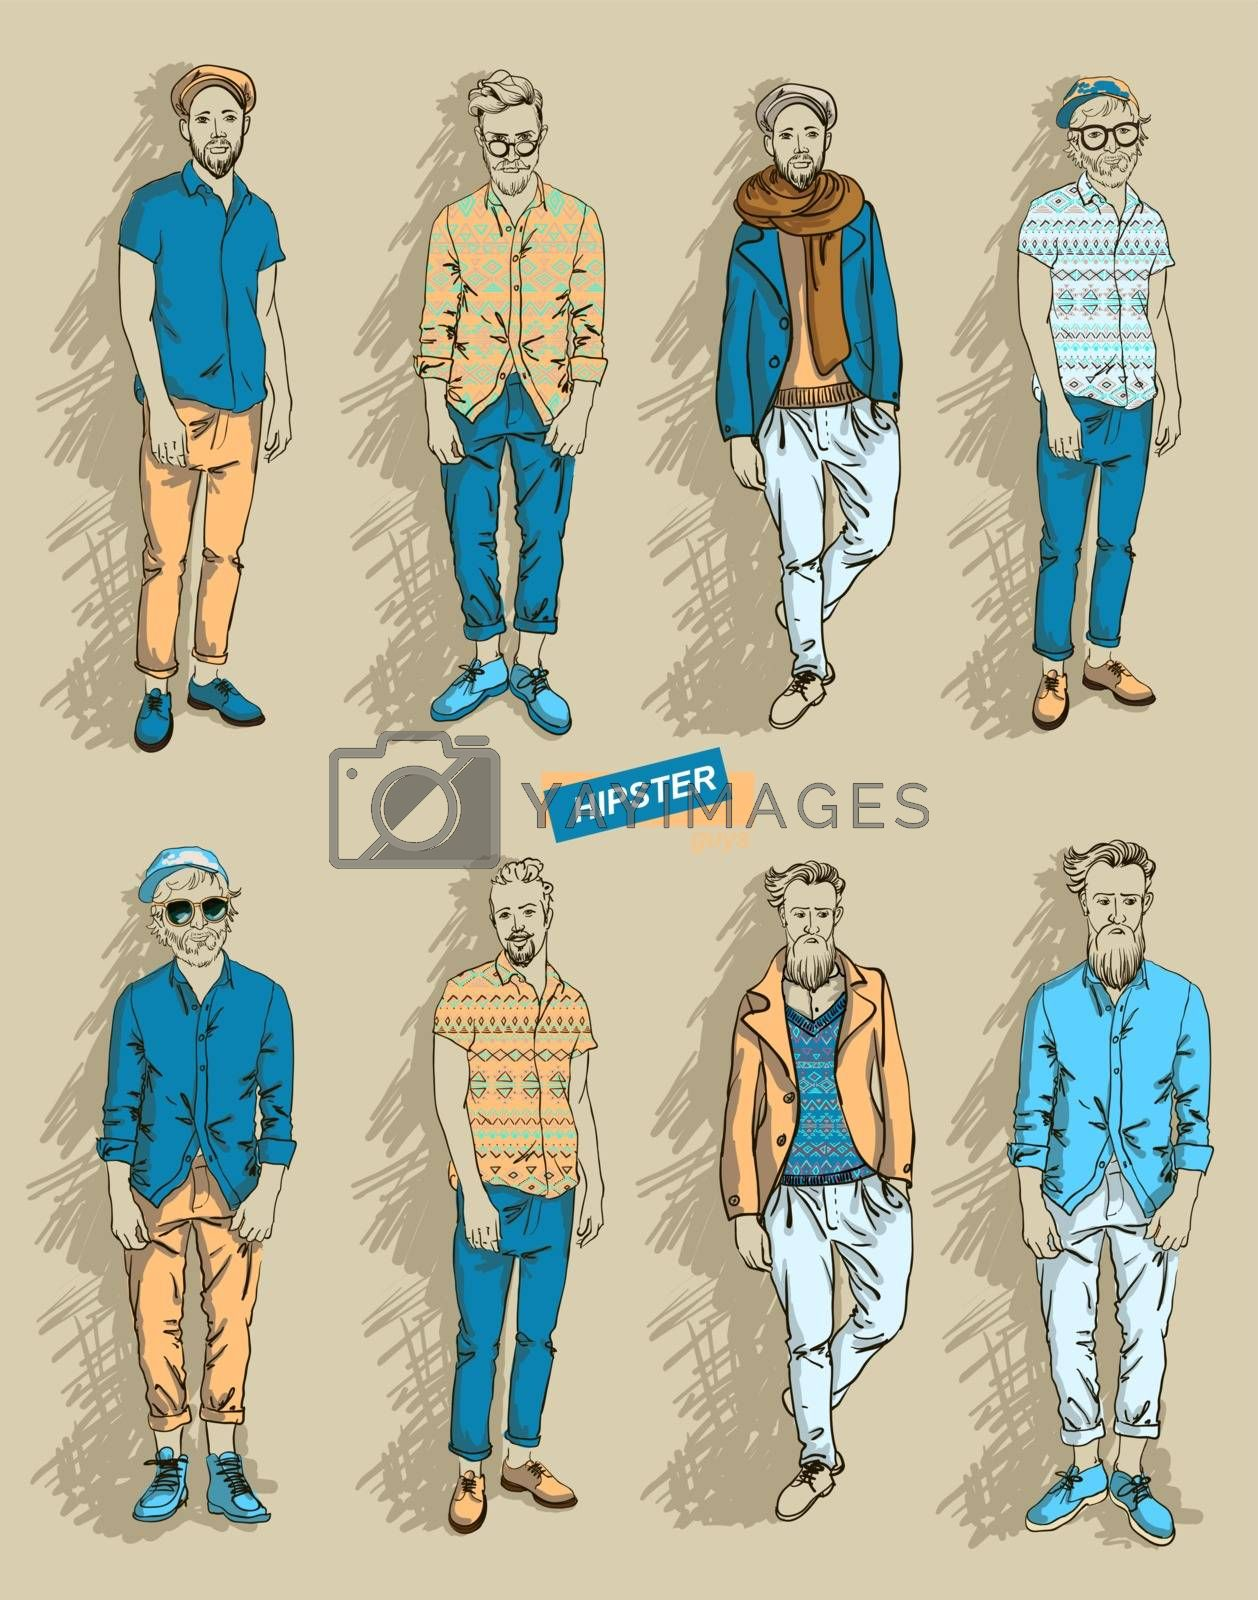 Hipster man in fashion set by OlgaBerlet